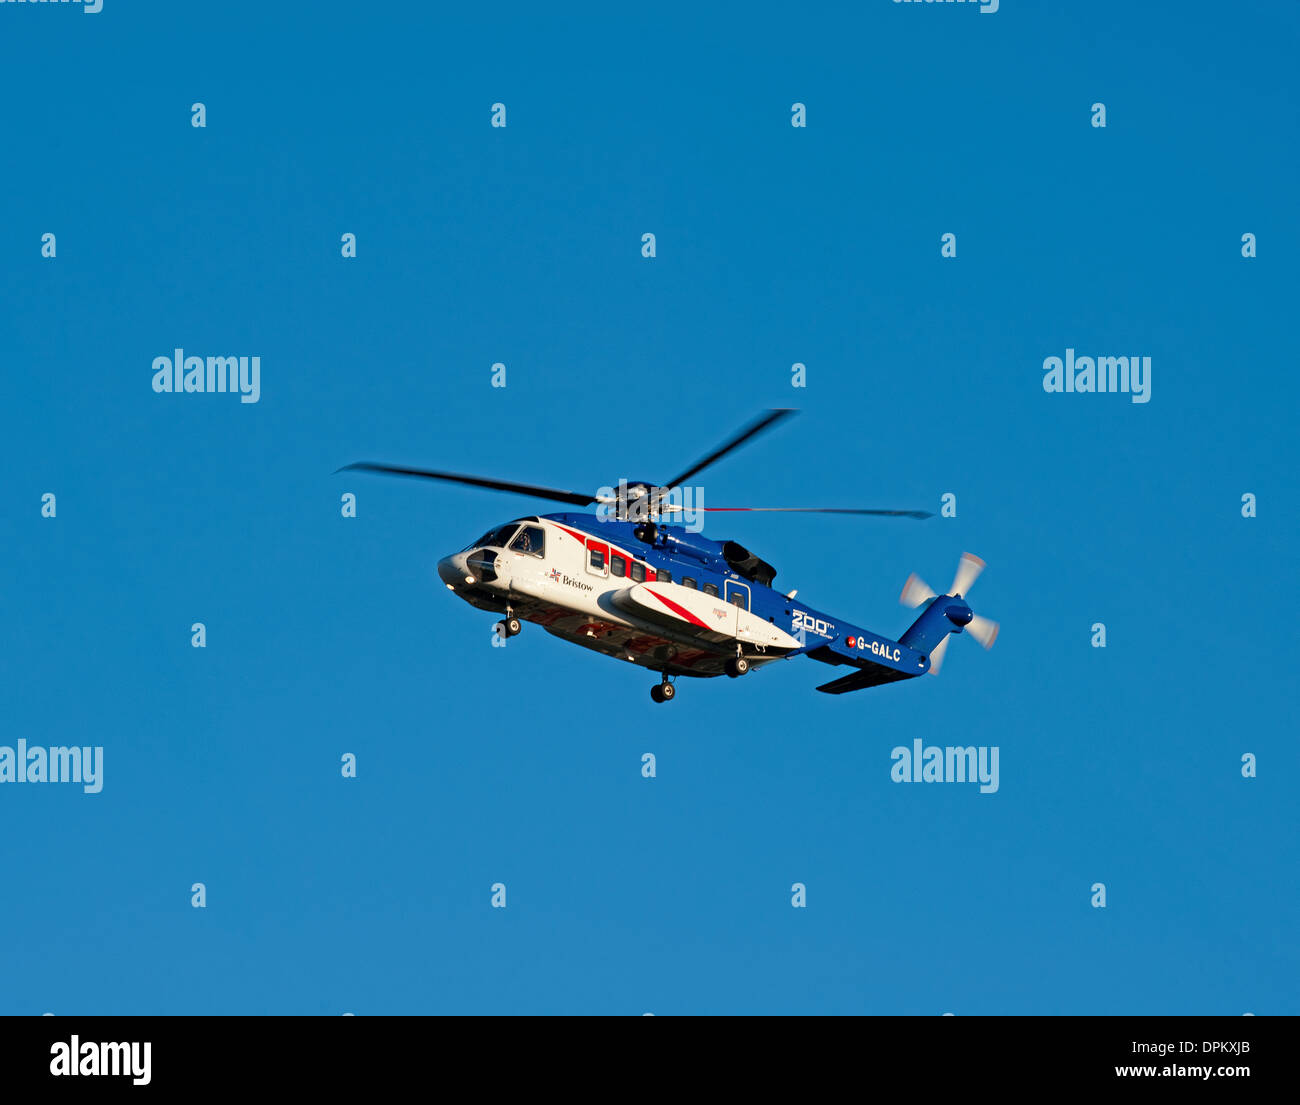 Bristow Helicopter G-GALC Sikorsky S92 approaching Aberdeen Airport.  SCO 9201 Stock Photo